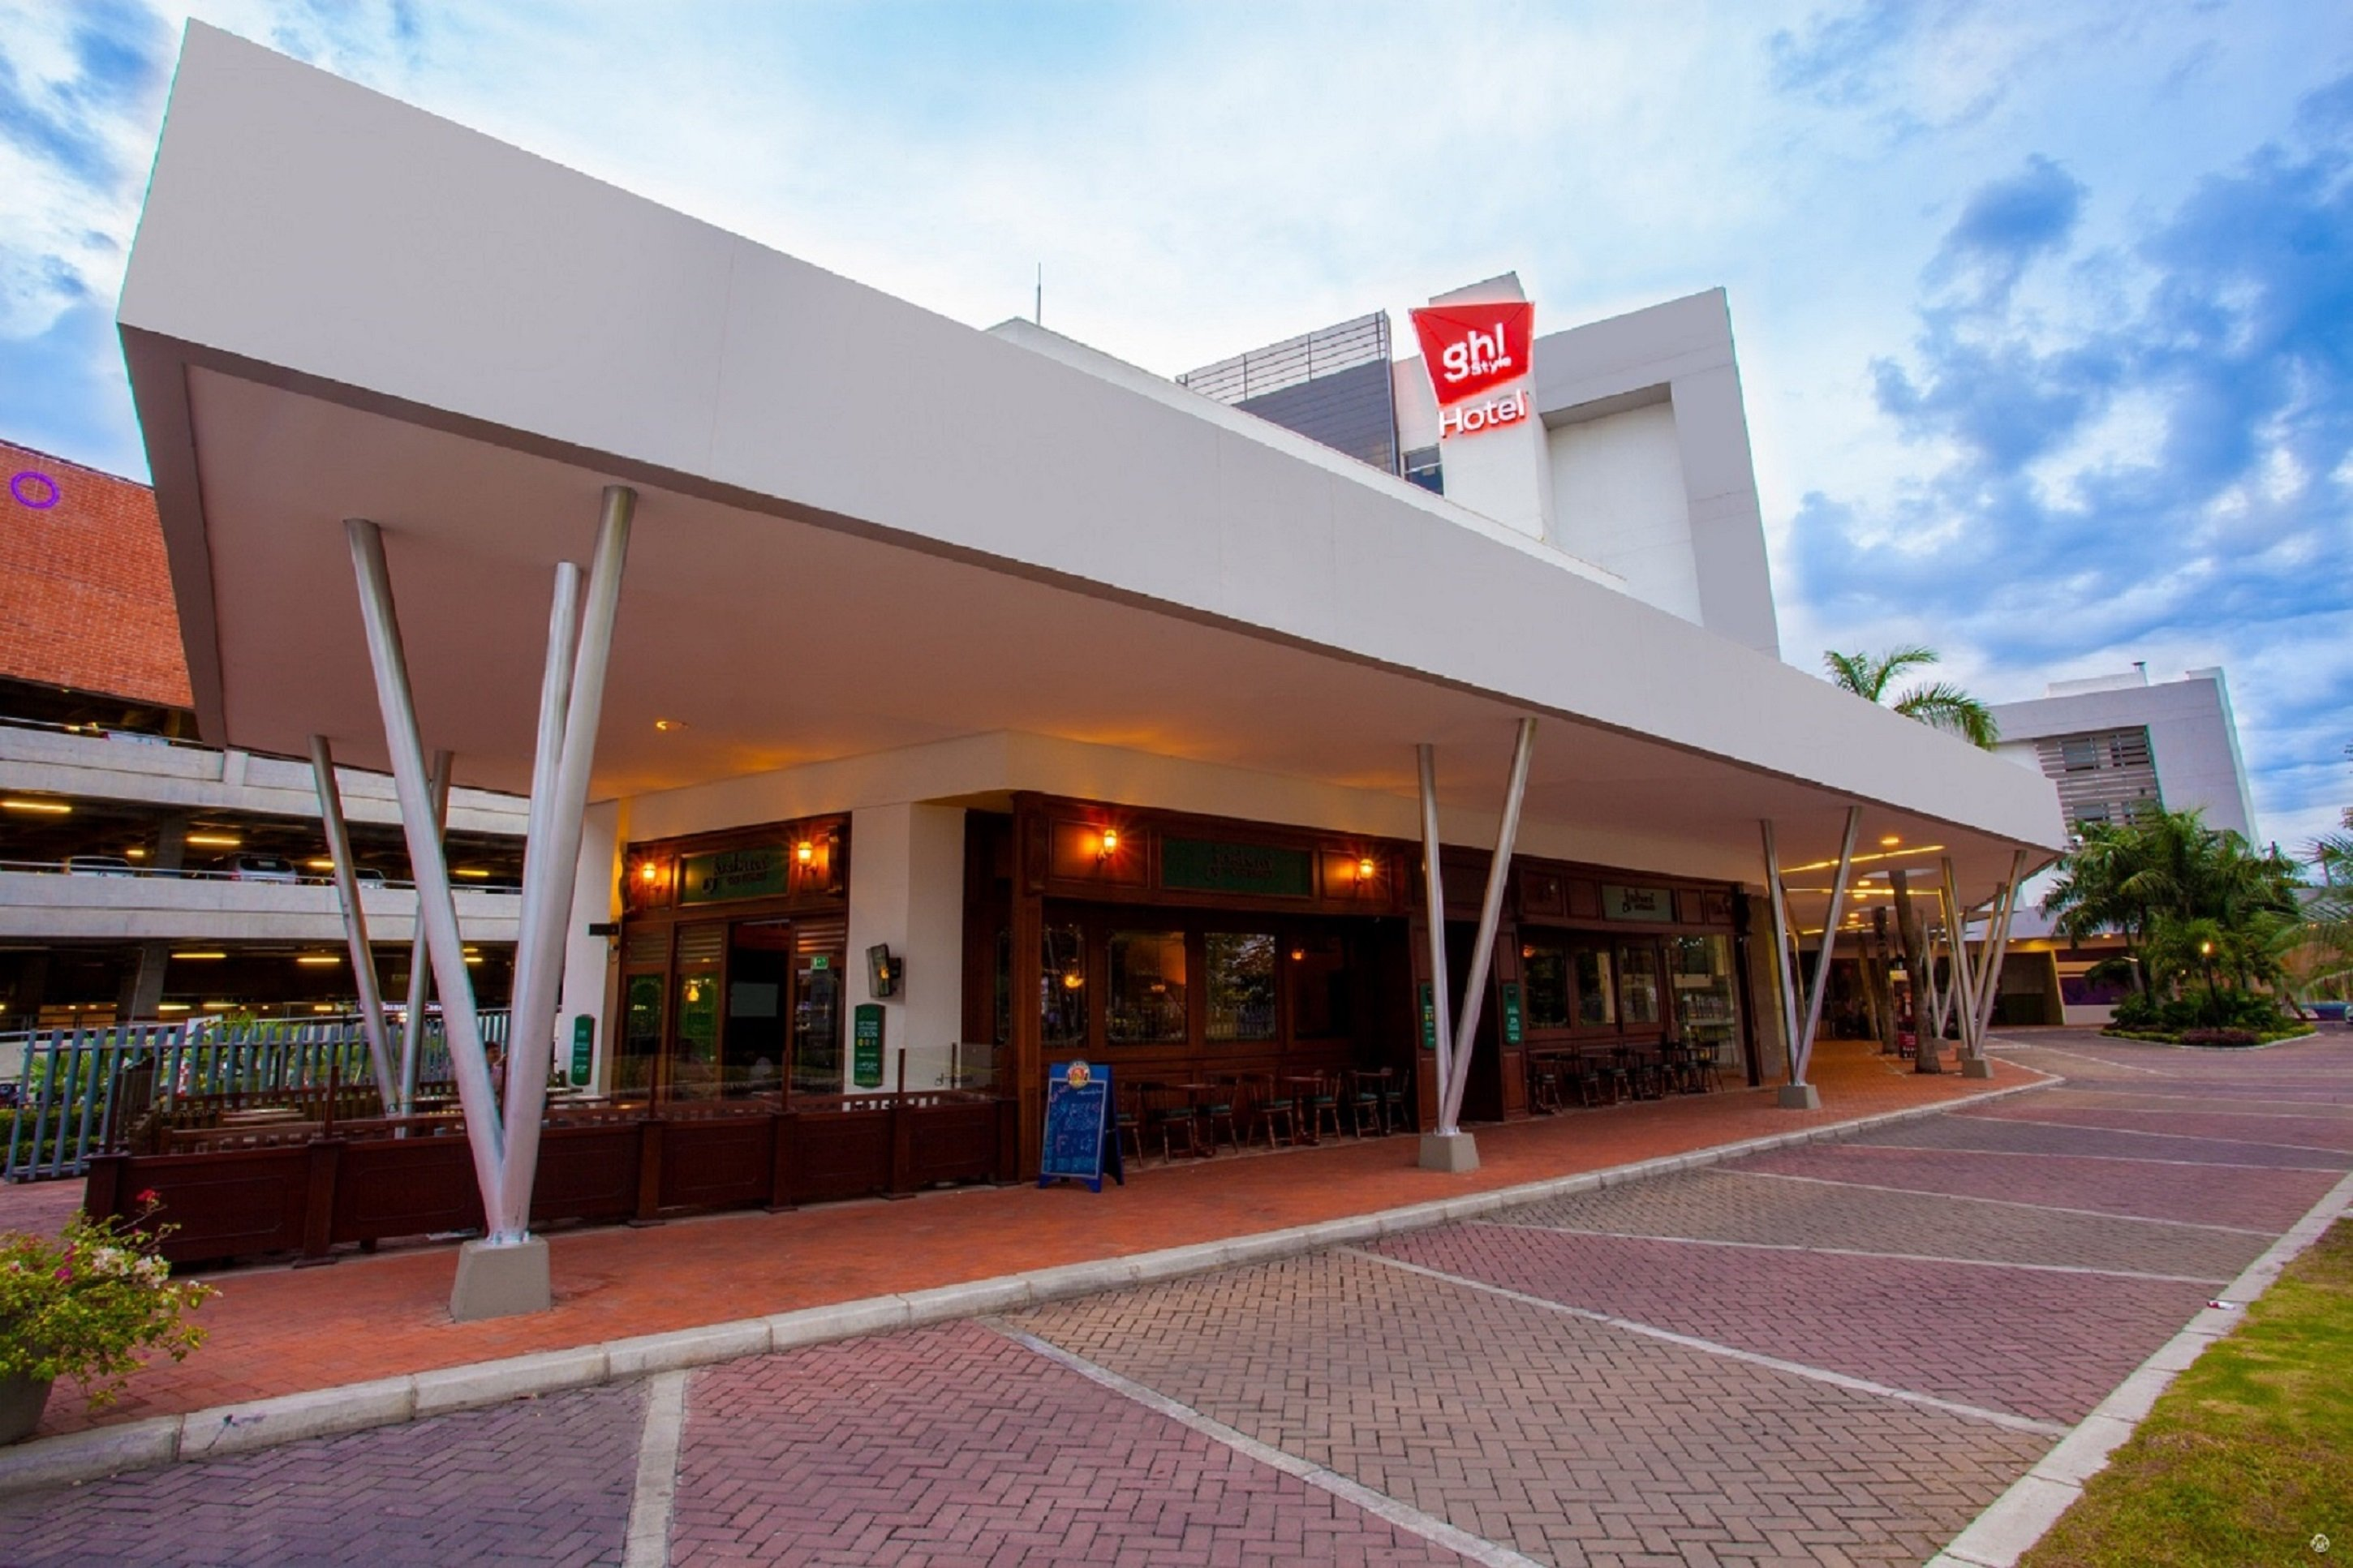 Fotos ghl style hotel neiva neiva ghl hoteles for Style hotel